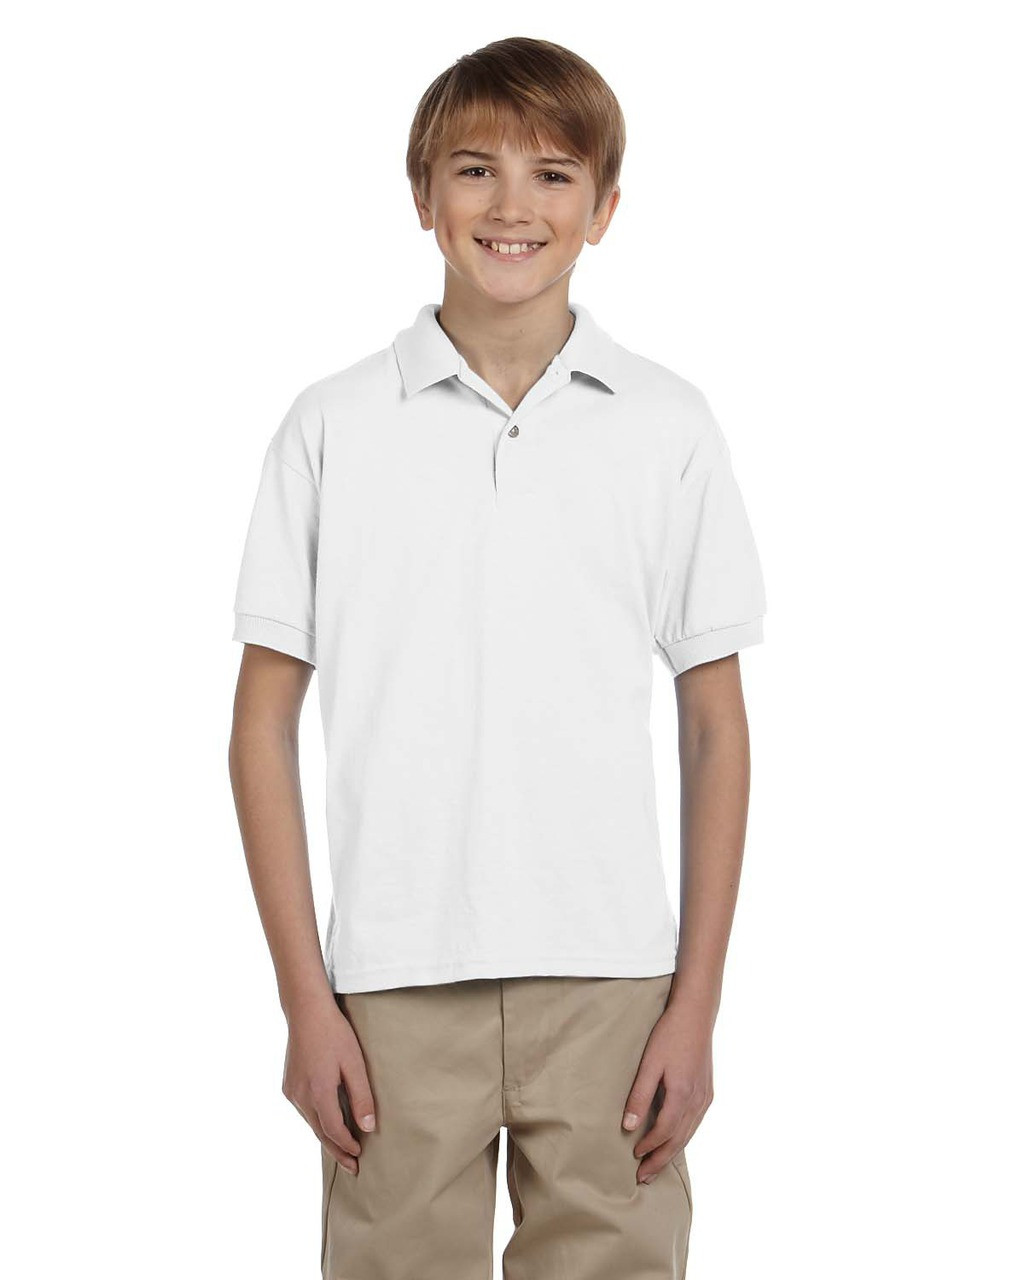 White - G880B Gildan DryBlend® Youth 50/50 Jersey Polo Shirt | Blankclothing.ca